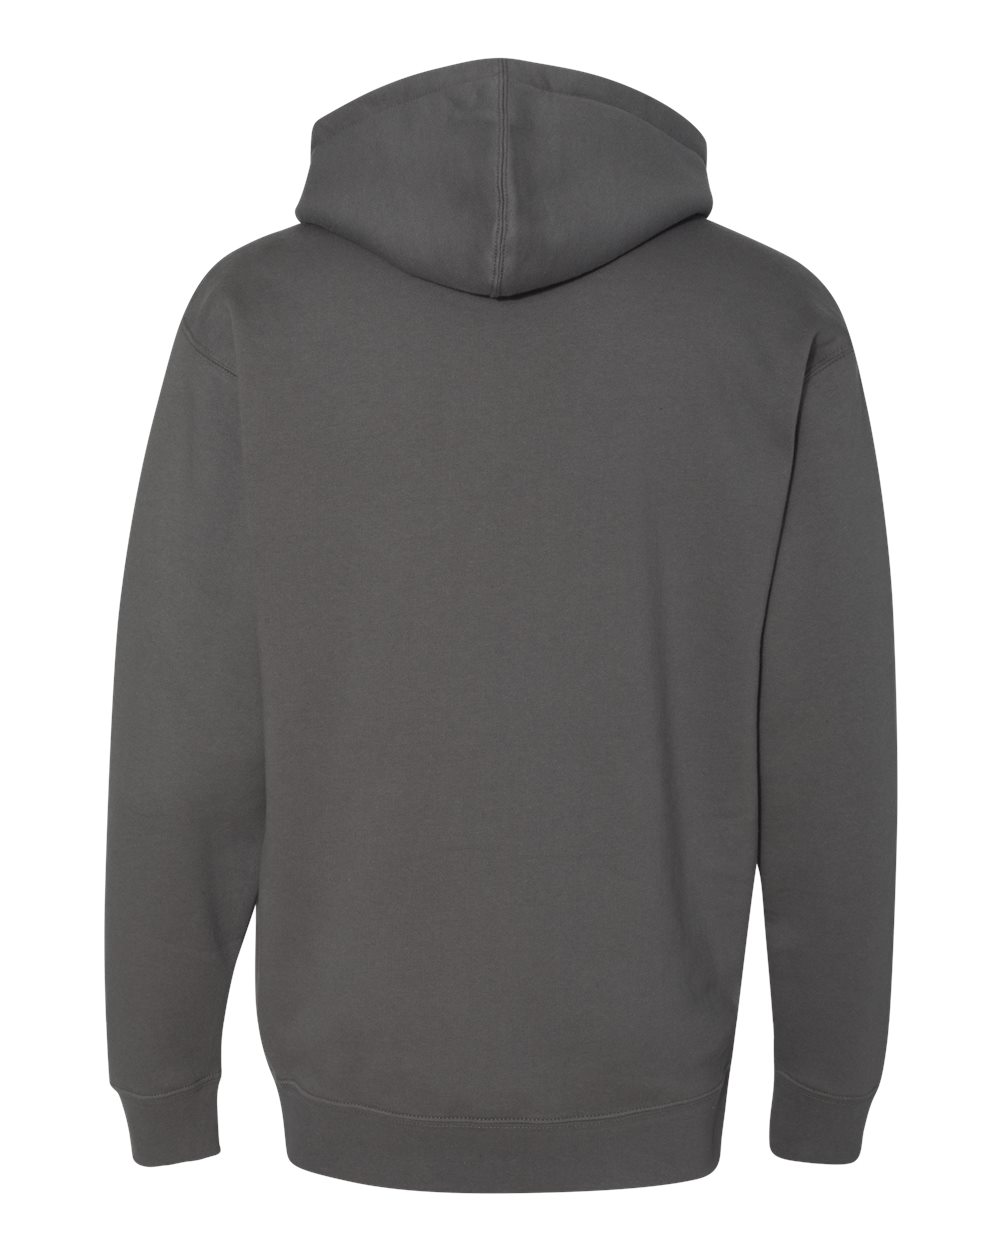 Independent-Trading-Co-Mens-Hooded-Pullover-Sweatshirt-IND4000-up-to-3XL miniature 25